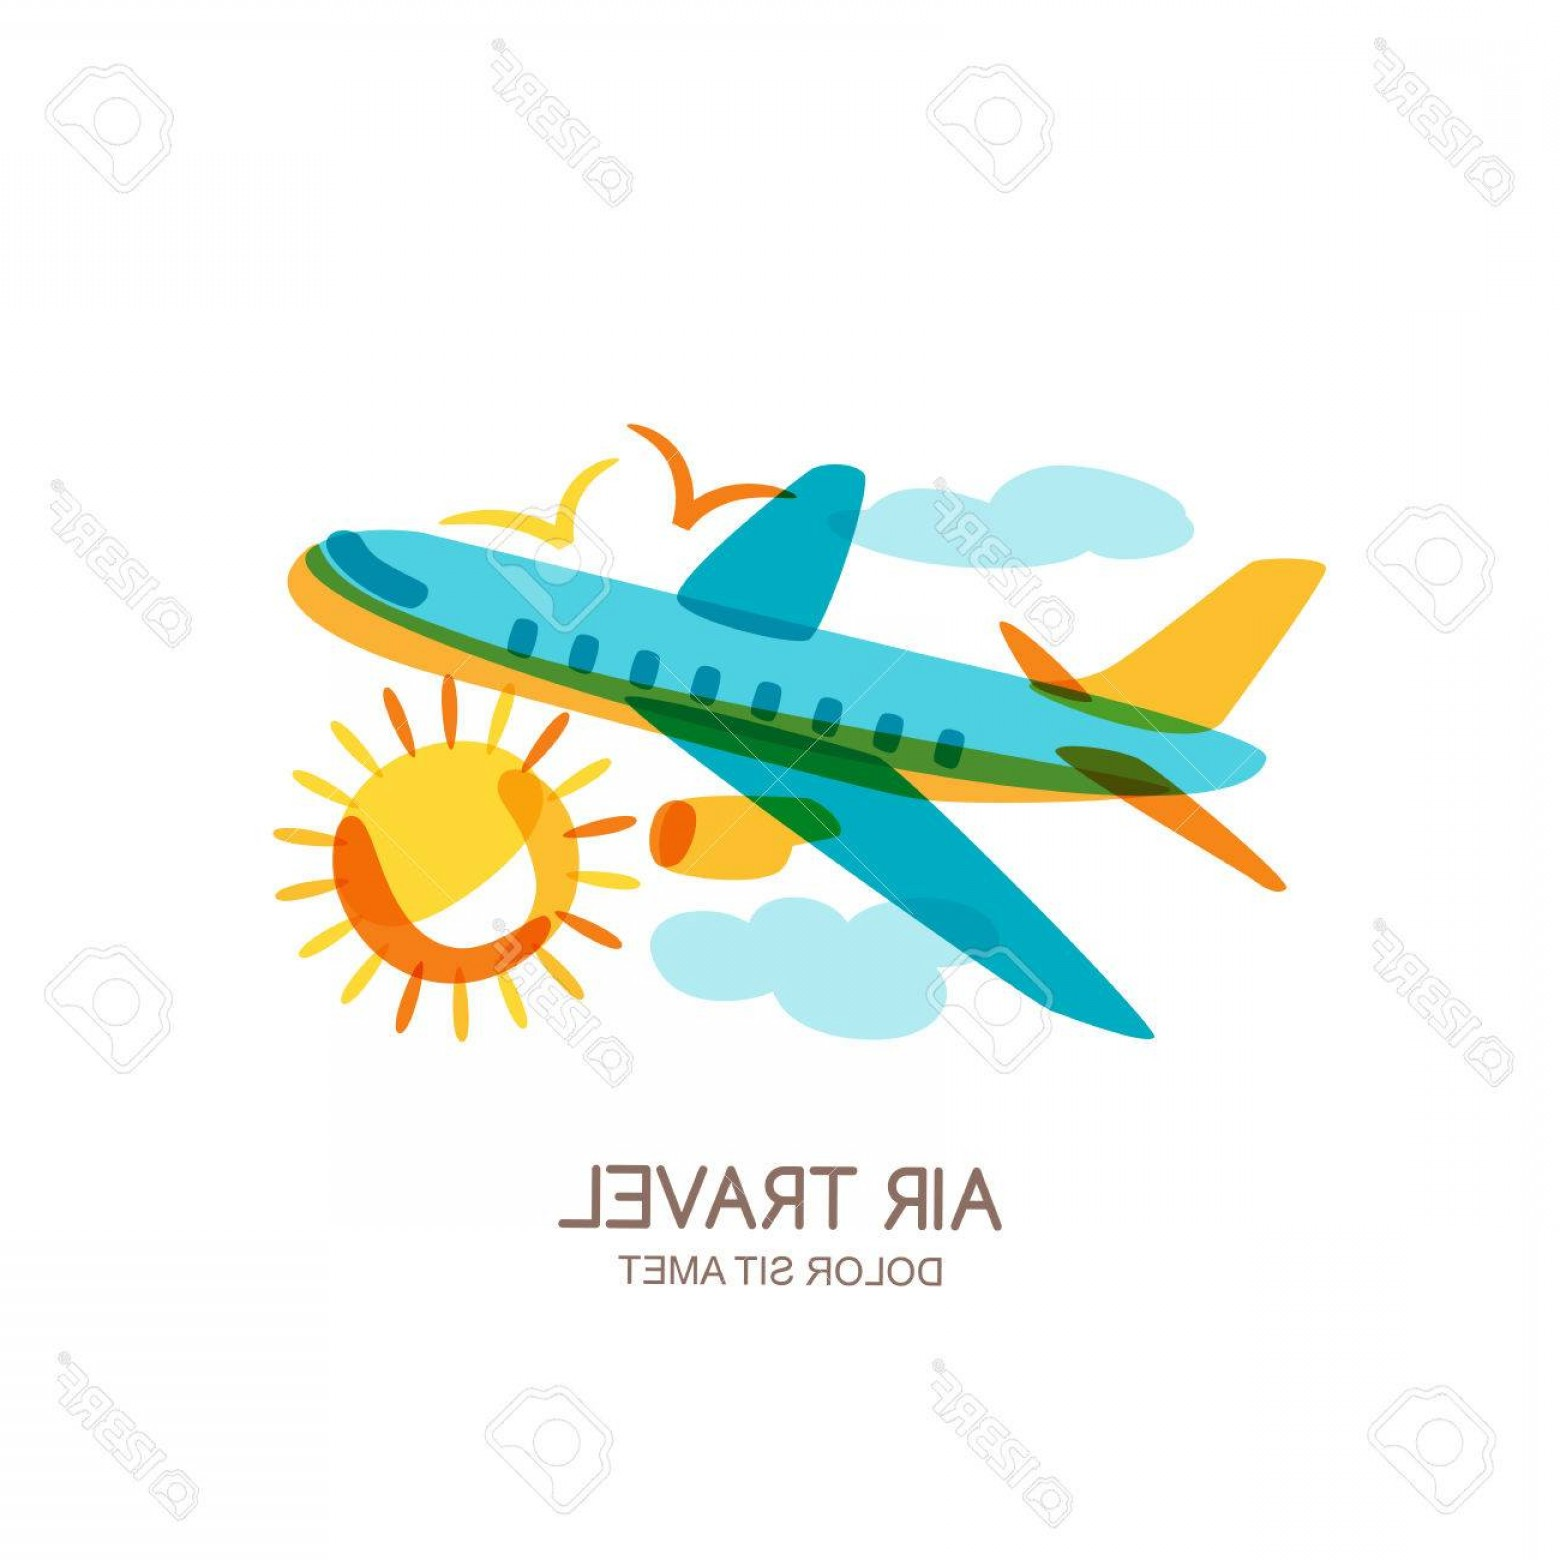 Airplane Travel Vectors: Photostock Vector Vector Plane And Air Travel Logo Emblem Design Elements Multicolor Flying Airplane In The Sky Isolat